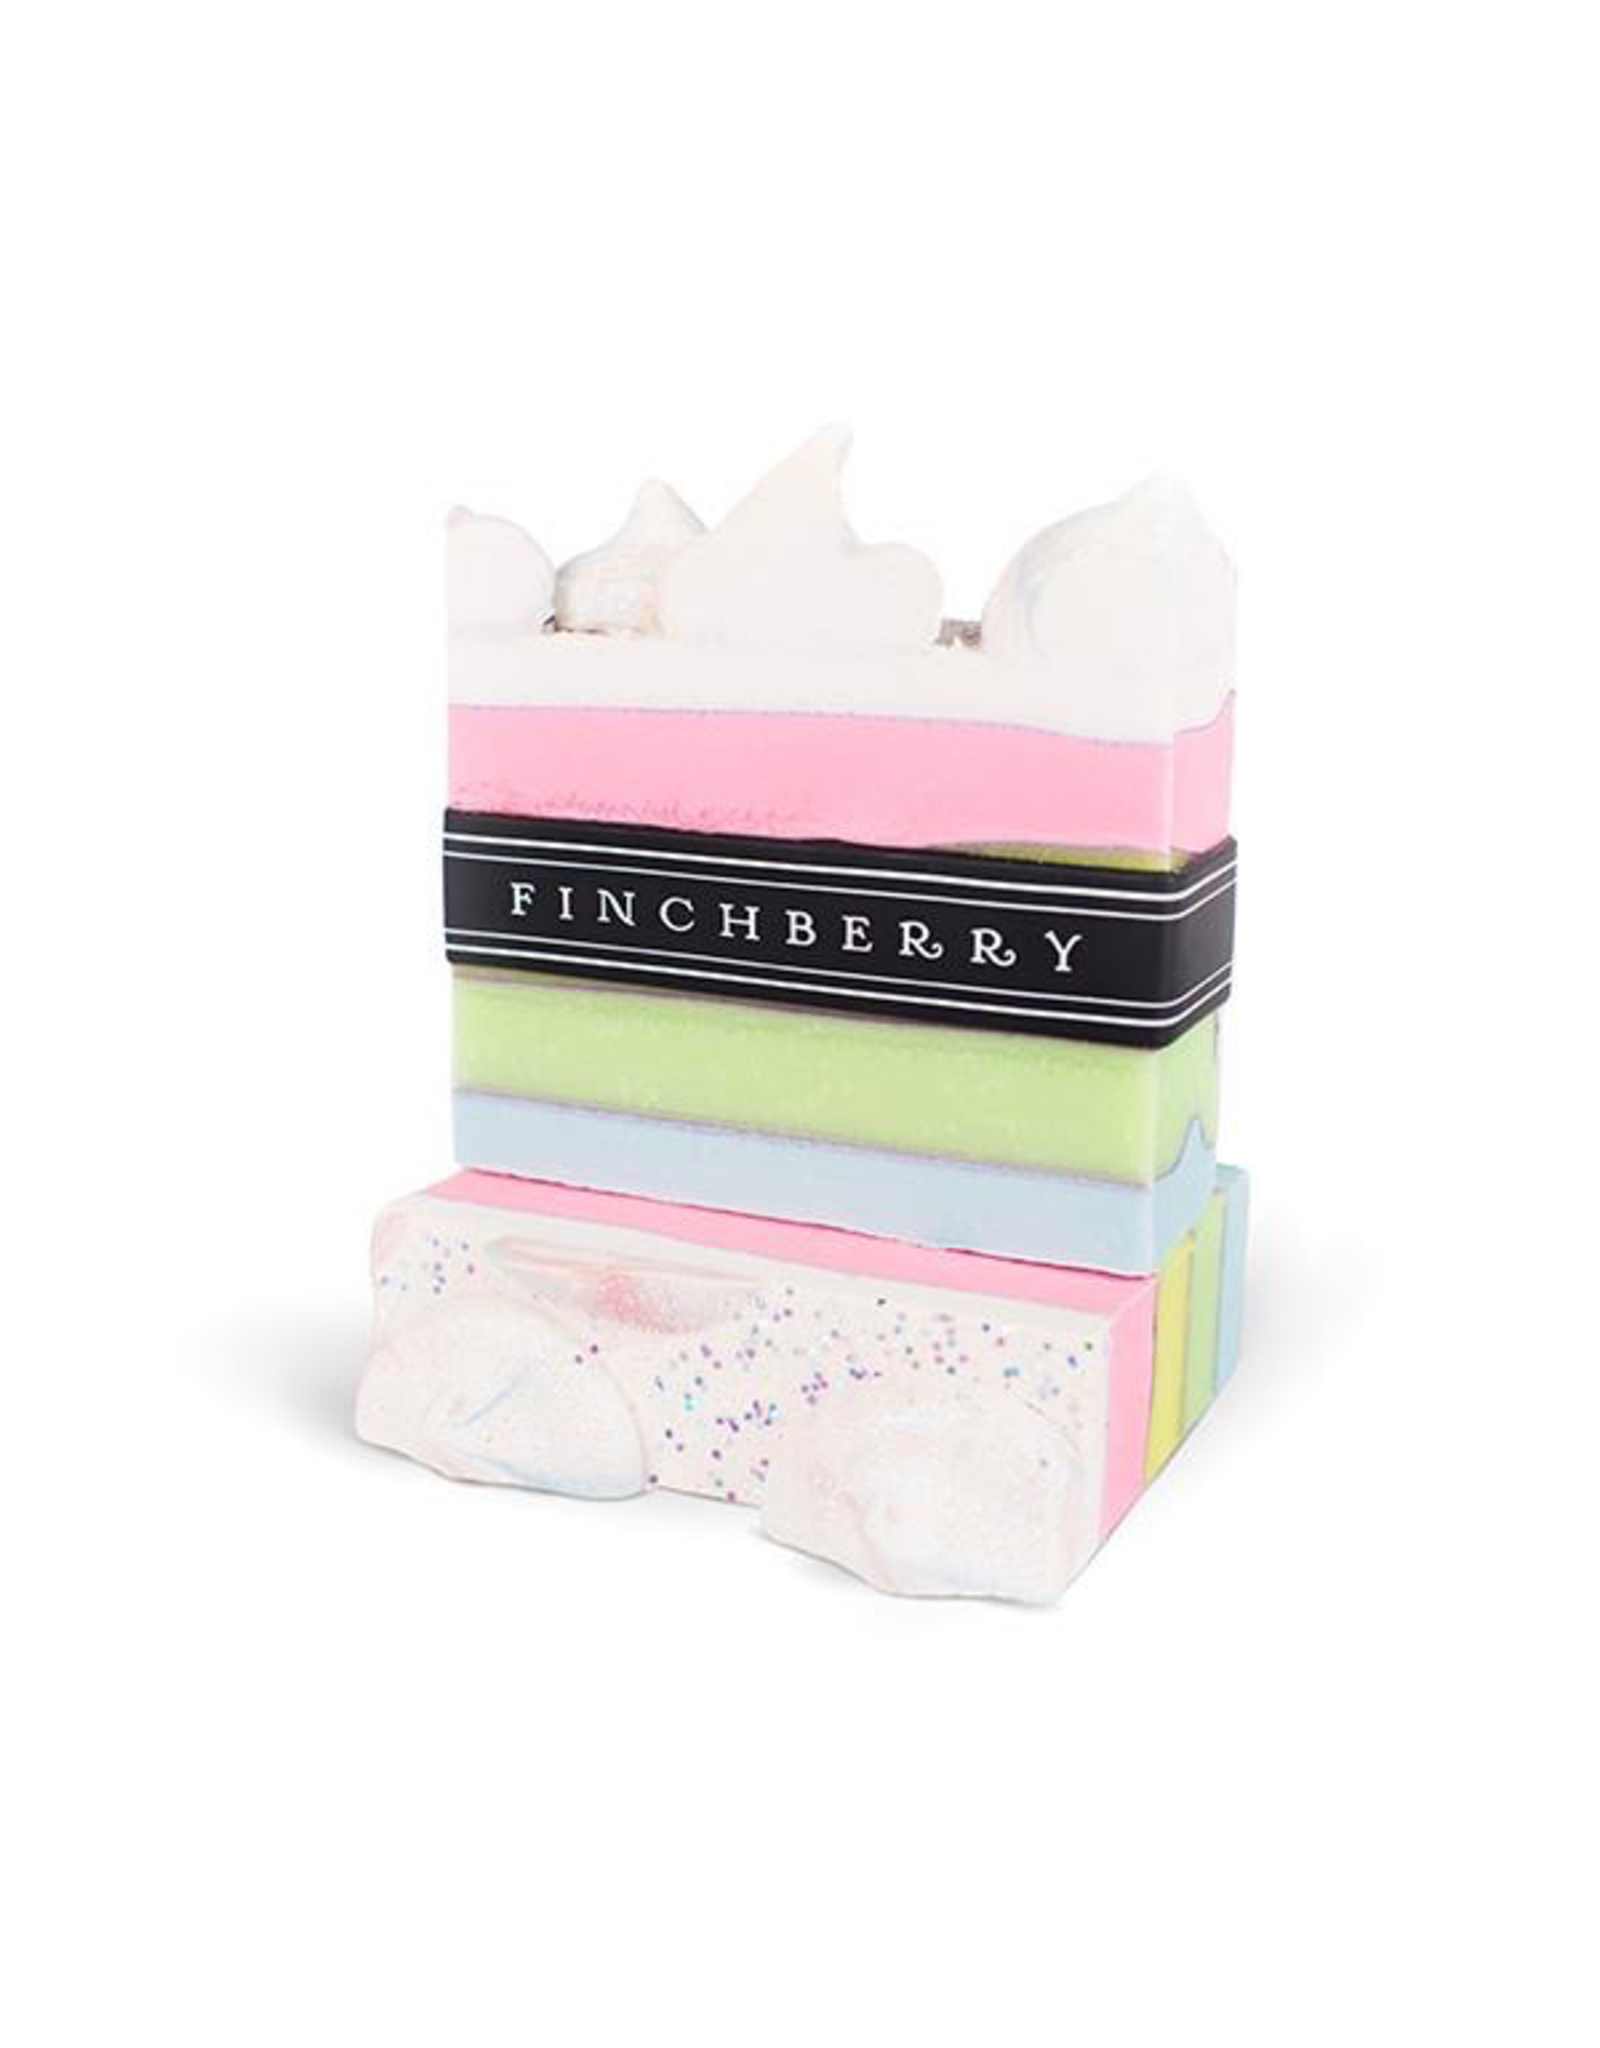 Finchberry Darling Soap 4.5oz